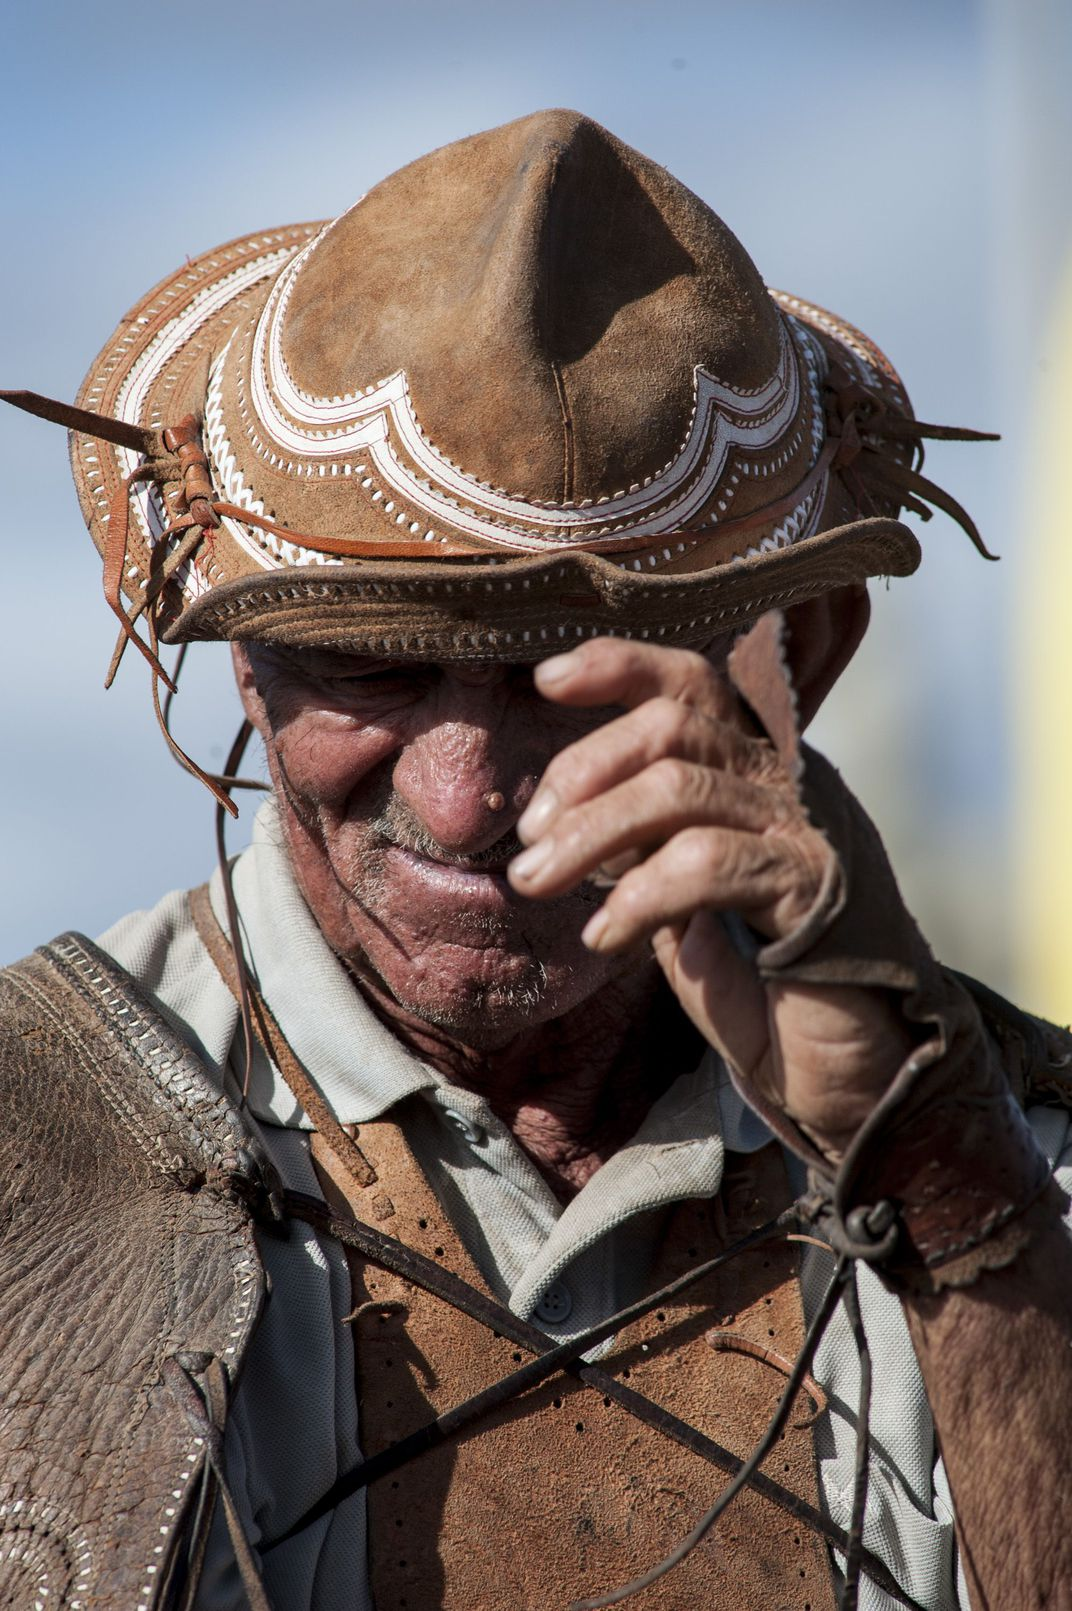 8a4c310d0ef94 Vaqueiro is the brazilian name for cowboy. This particularly man